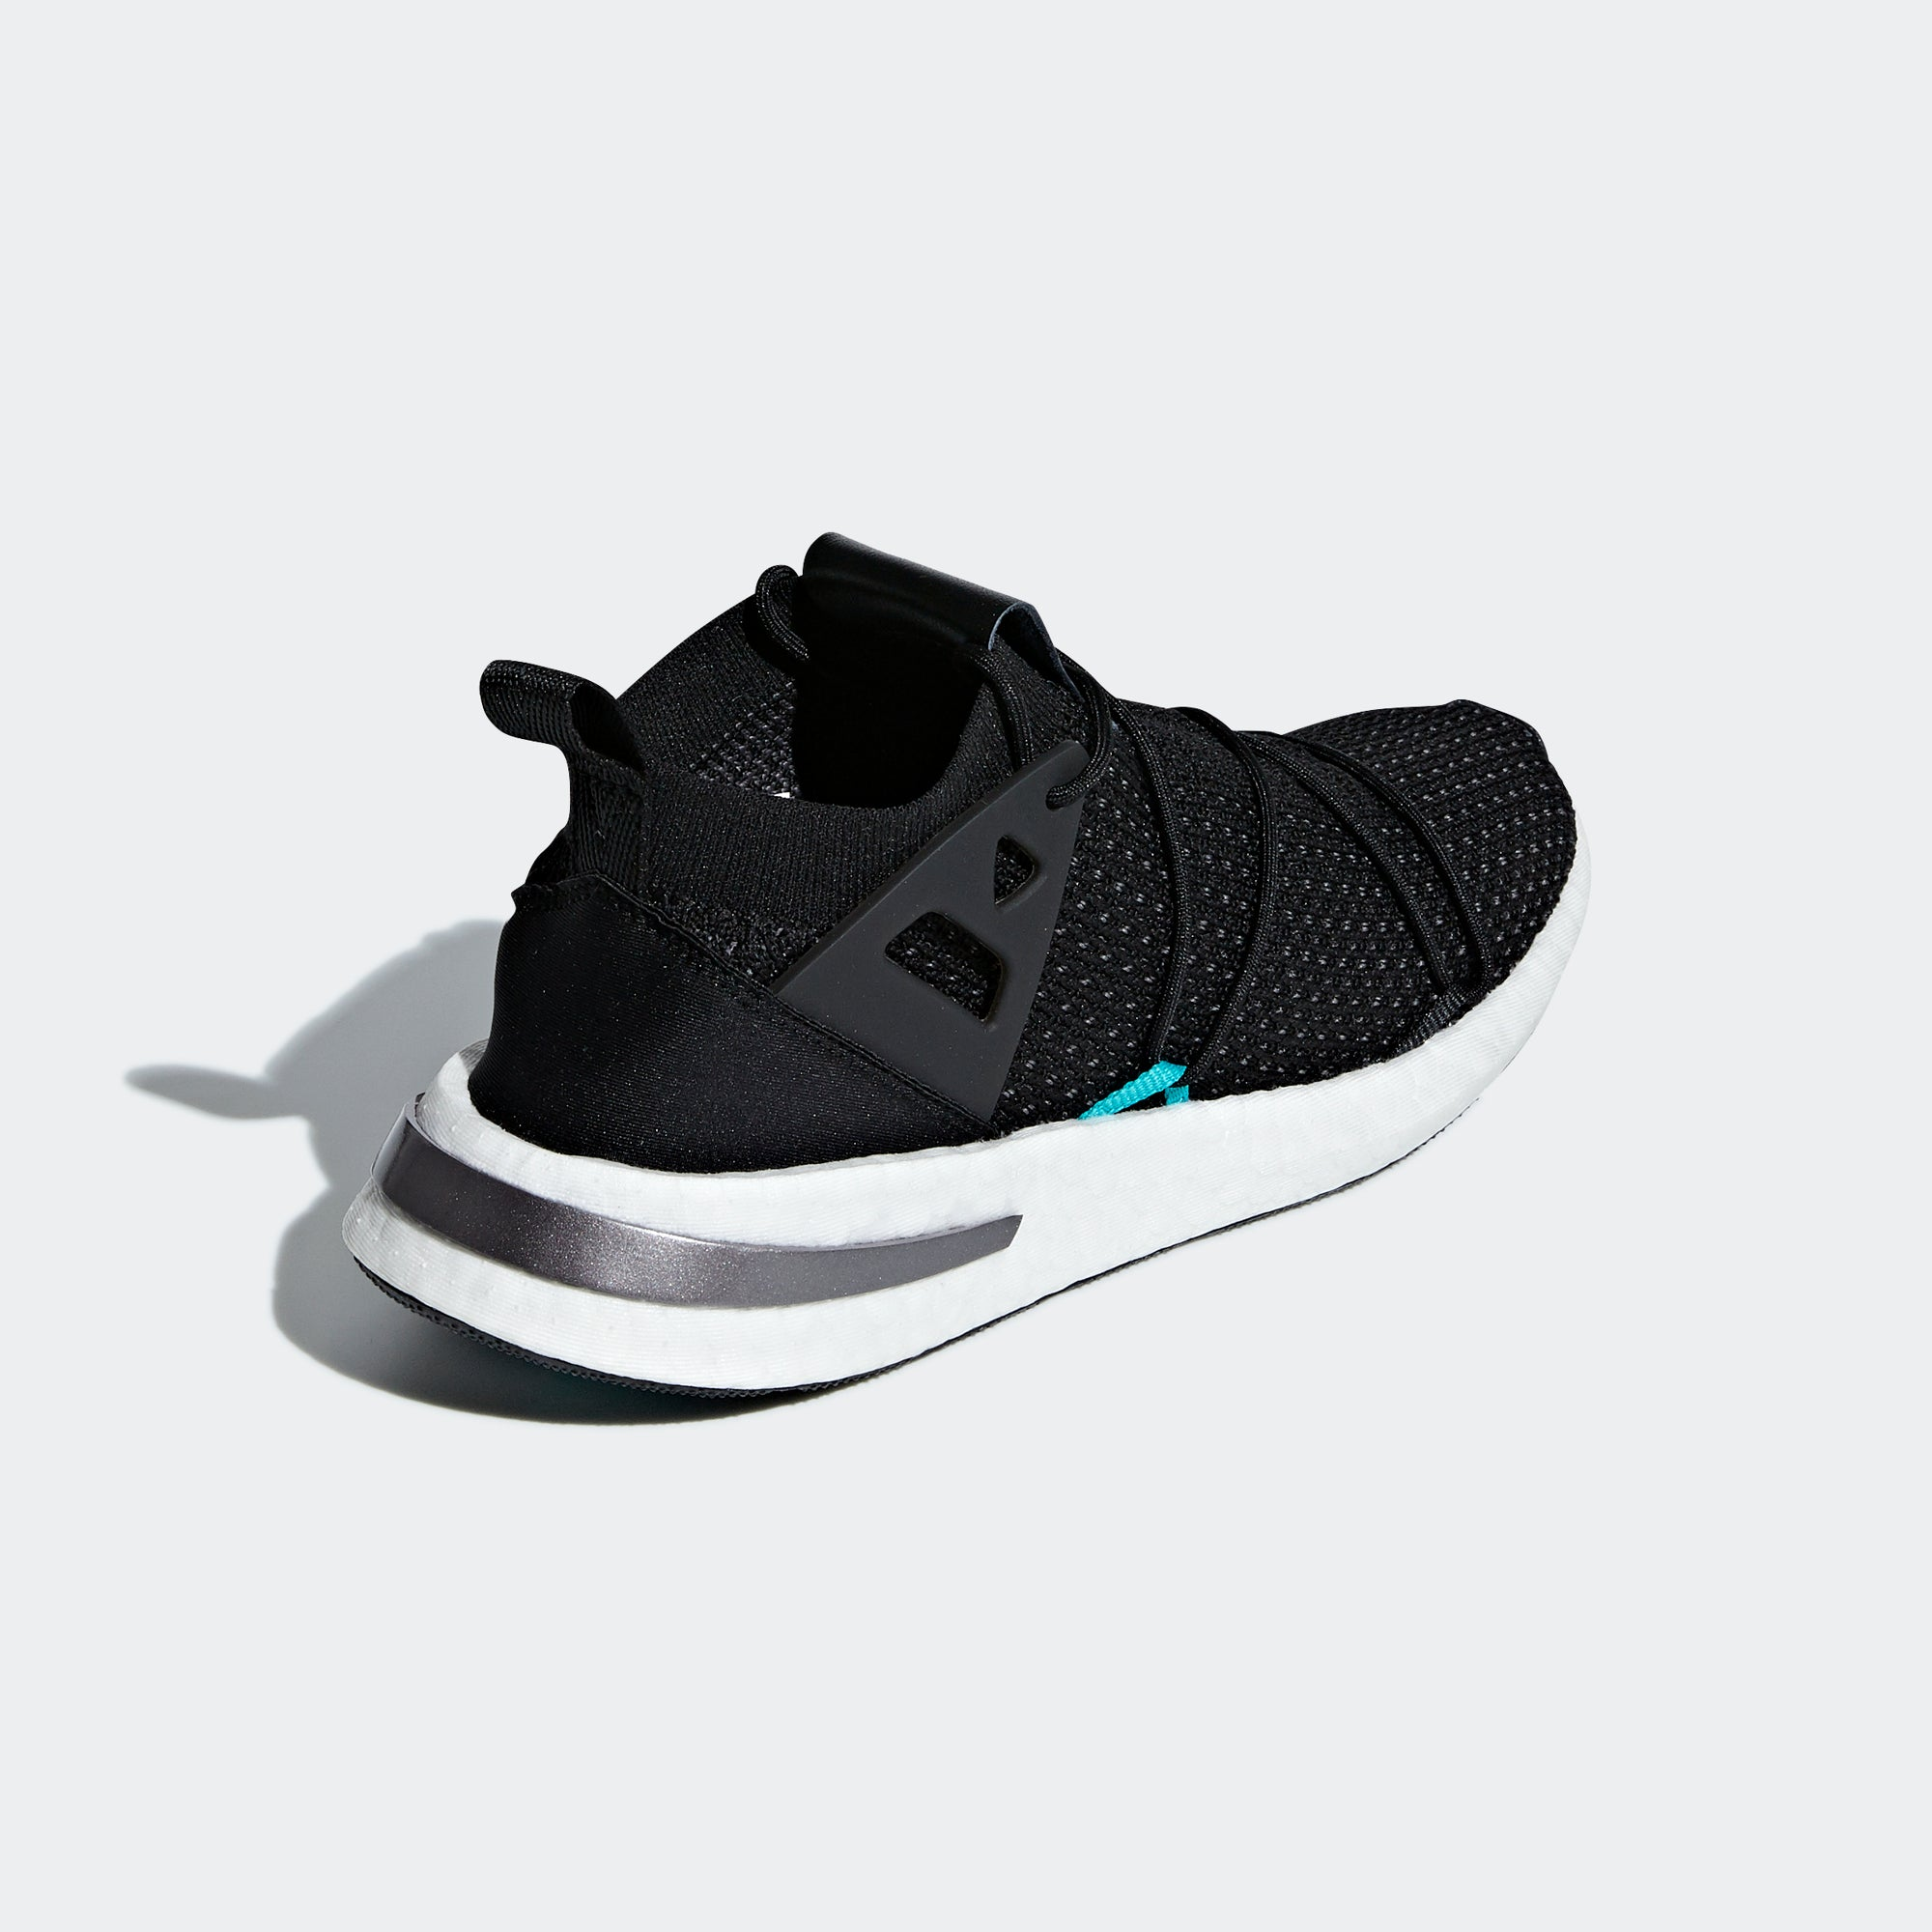 99f82465f4b Women's adidas Originals Arkyn Primeknit Shoes Core Black - 5.5 / BLACK